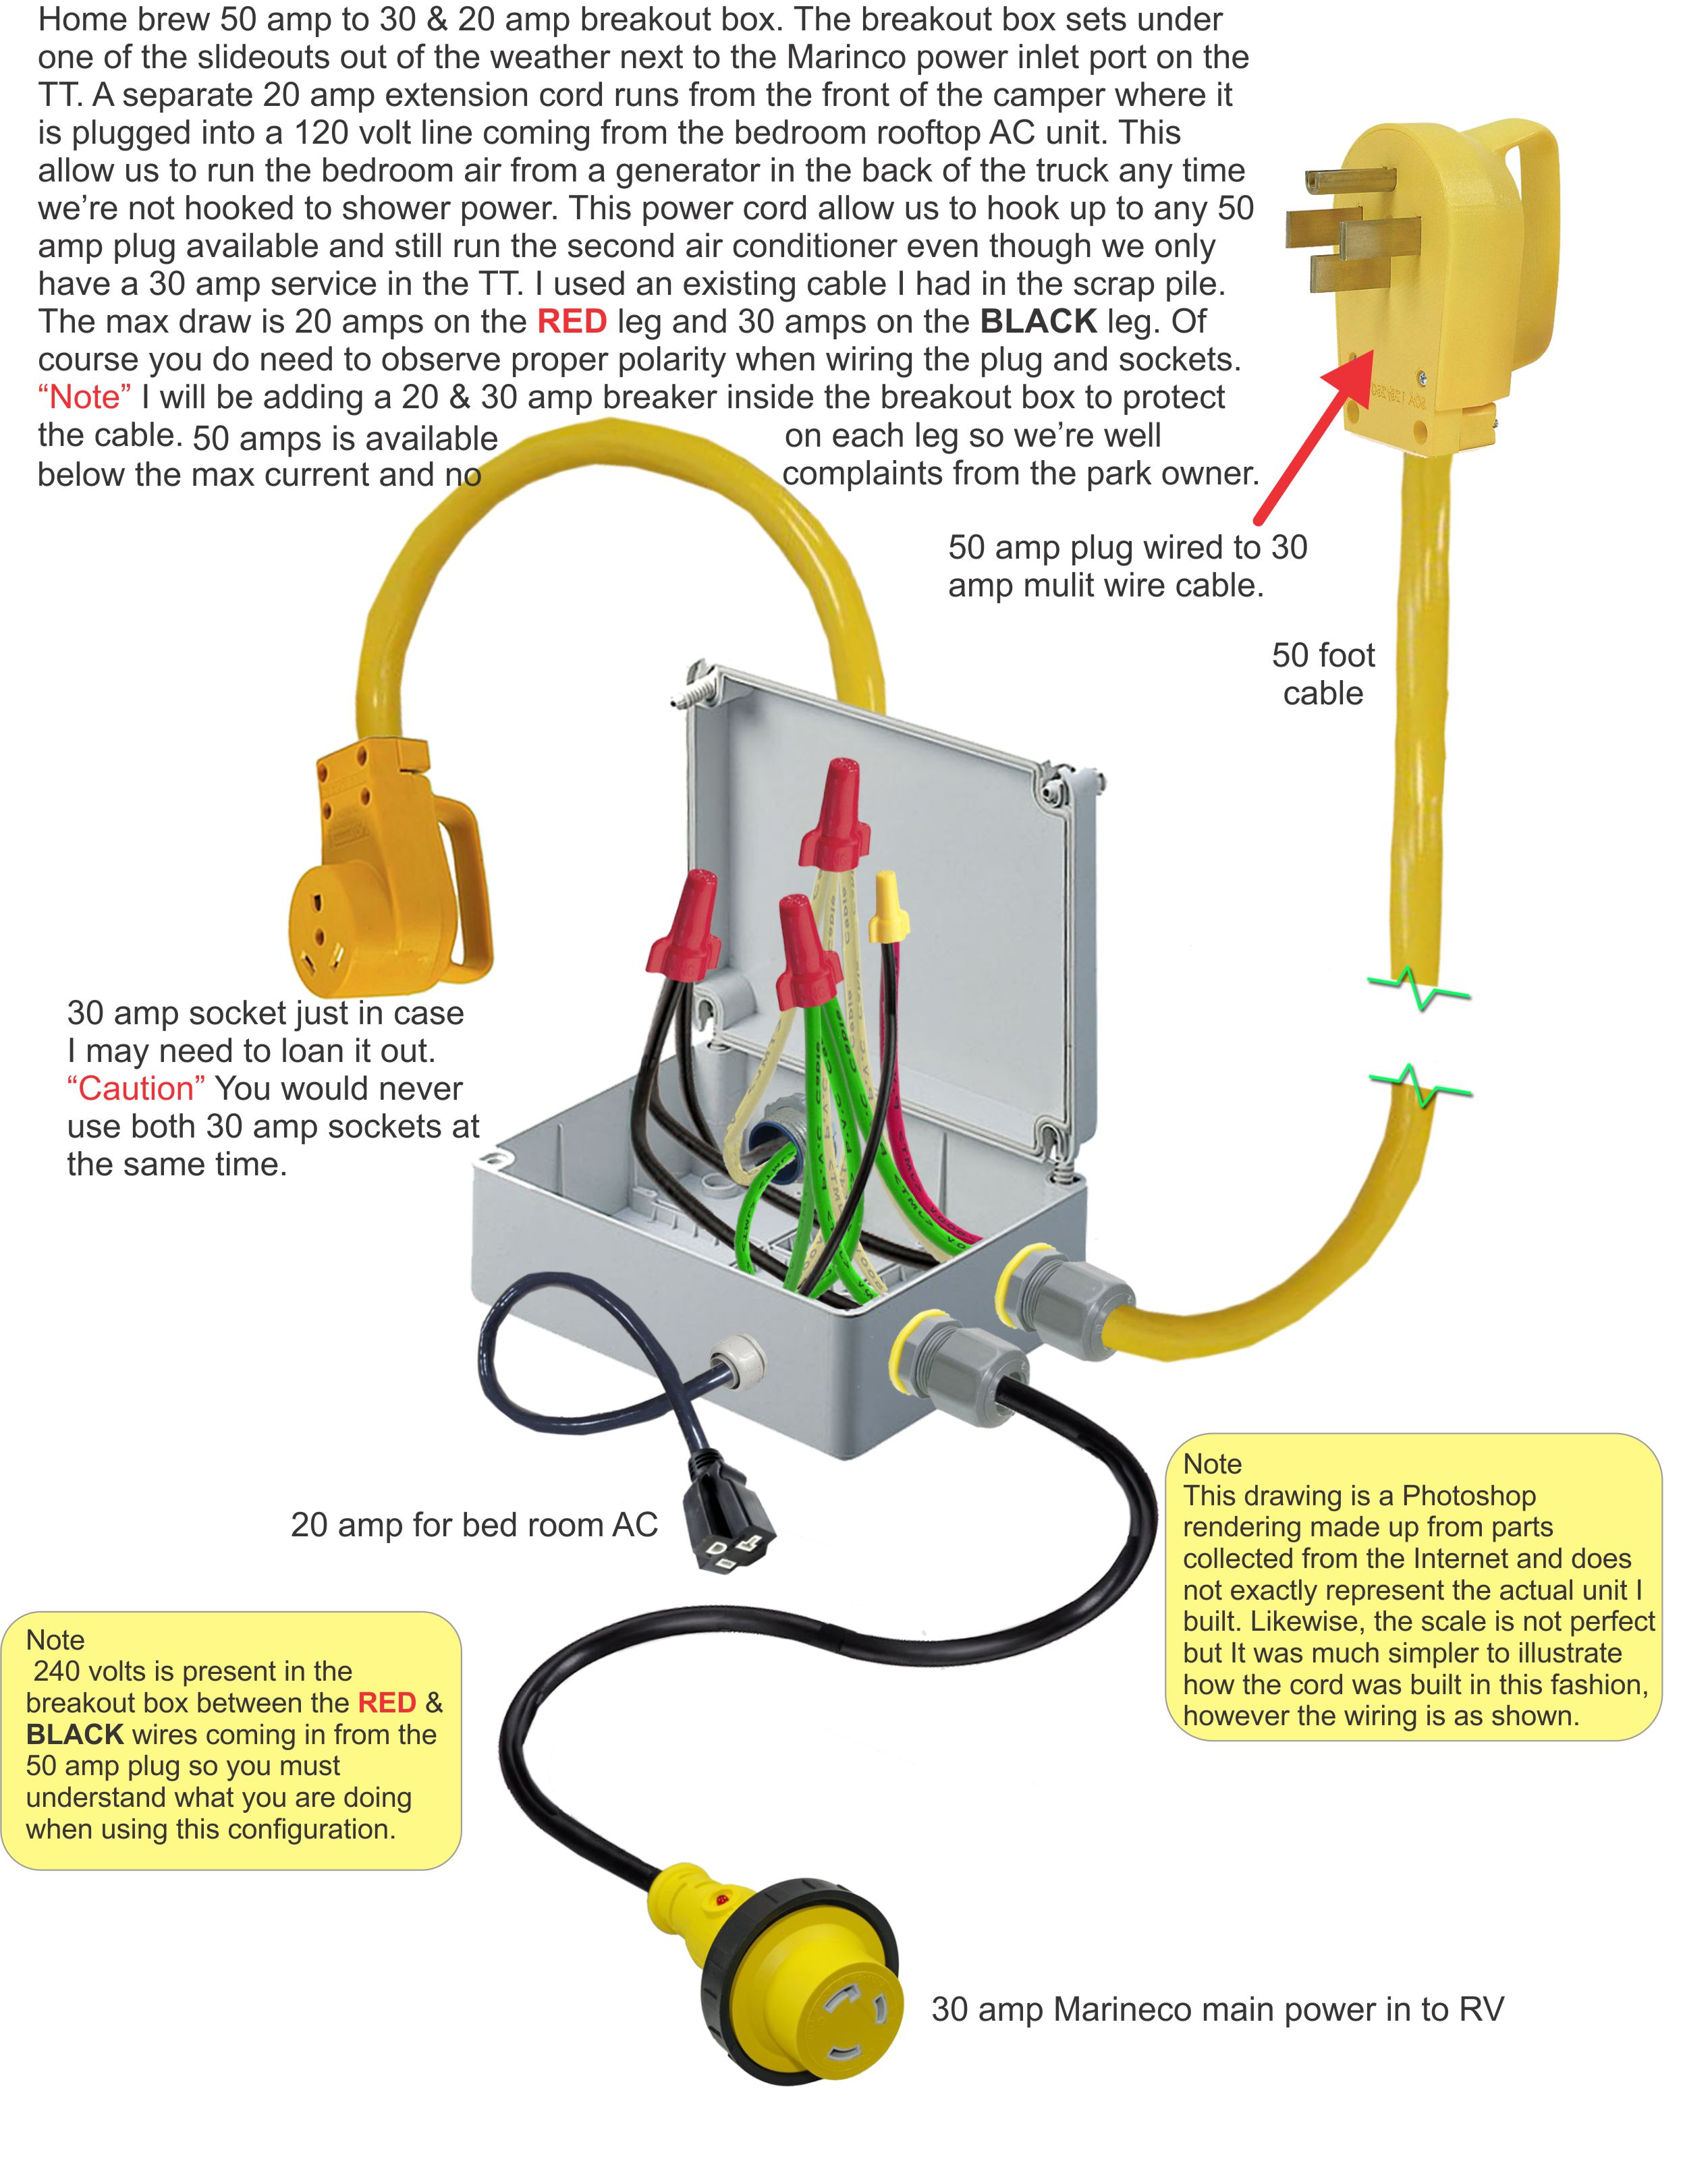 30 amp generator wiring diagram rv.net open roads forum: travel trailers: 50 amp to 20$30 ... fema rv 30 amp plug wiring diagram